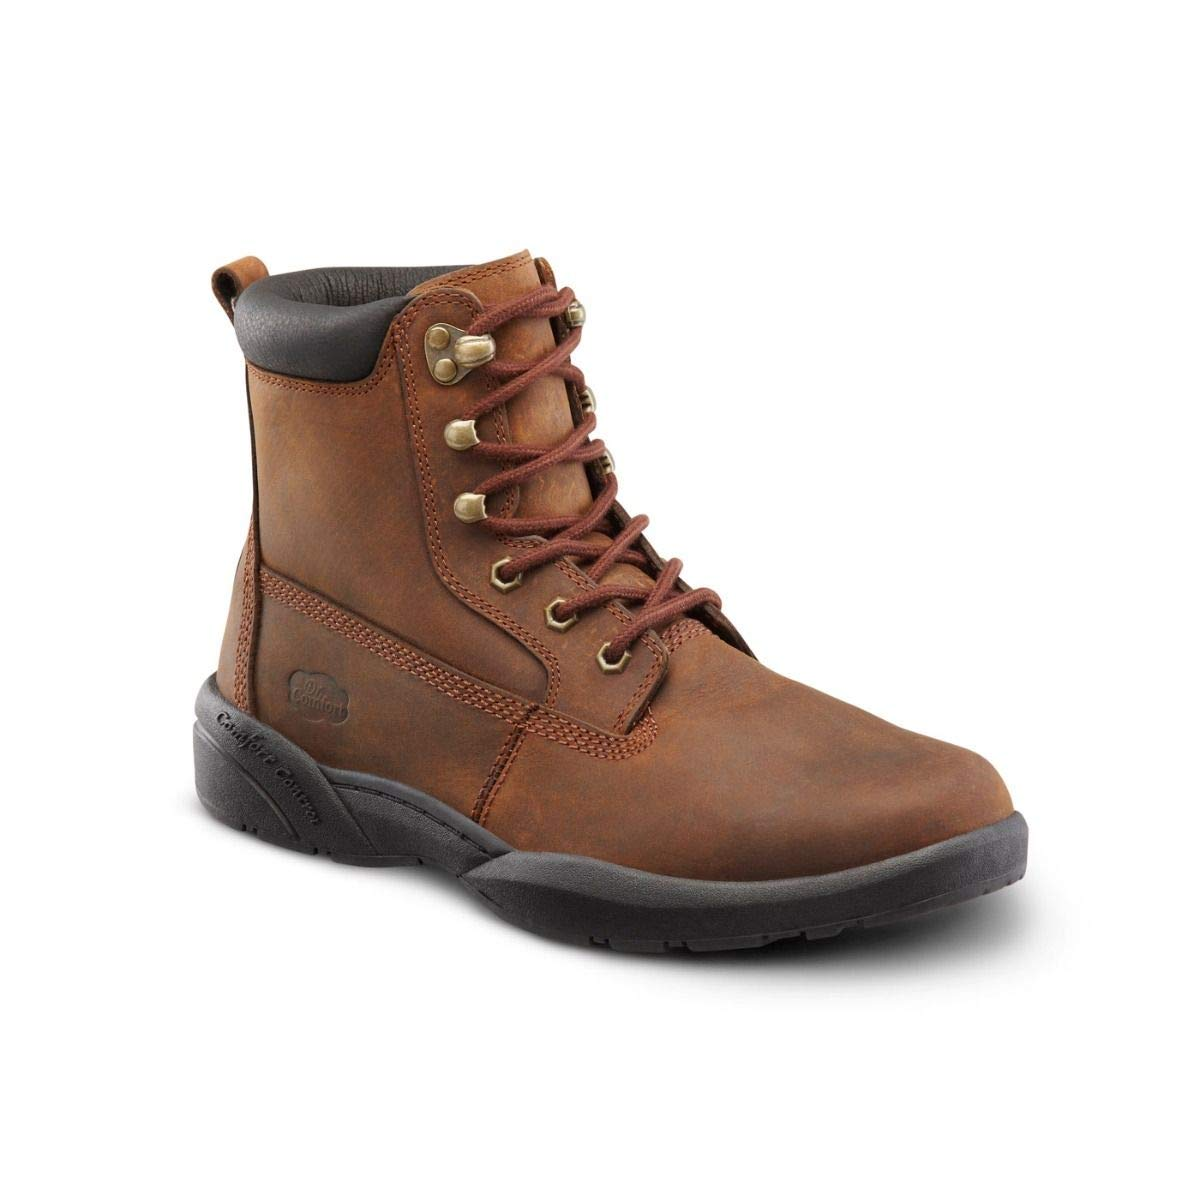 Dr. Comfort Men's Boss Diabetic Boots: Chestnut 11.5 Wide (E/2E) by Dr. Comfort